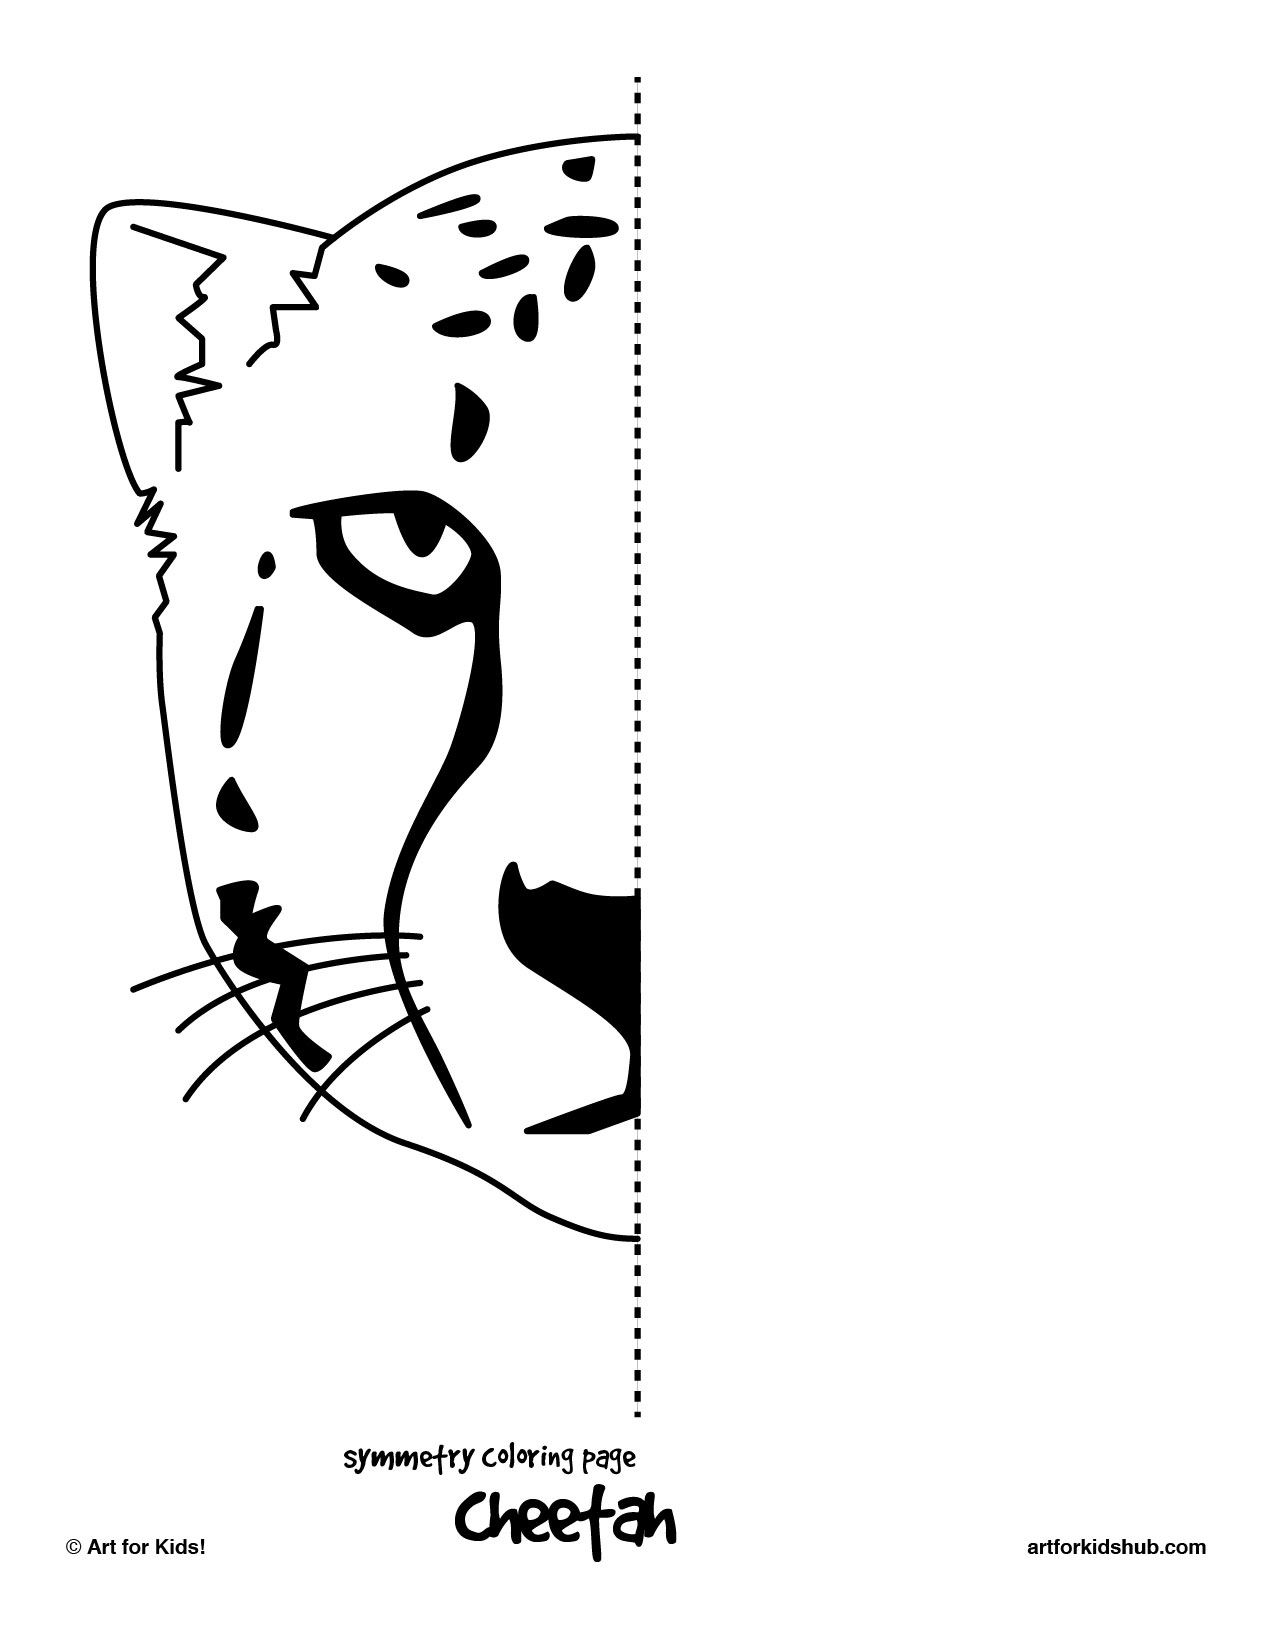 7 Best Images Of Symmetrical Drawing Pages Printable Symmetry Coloring Pages